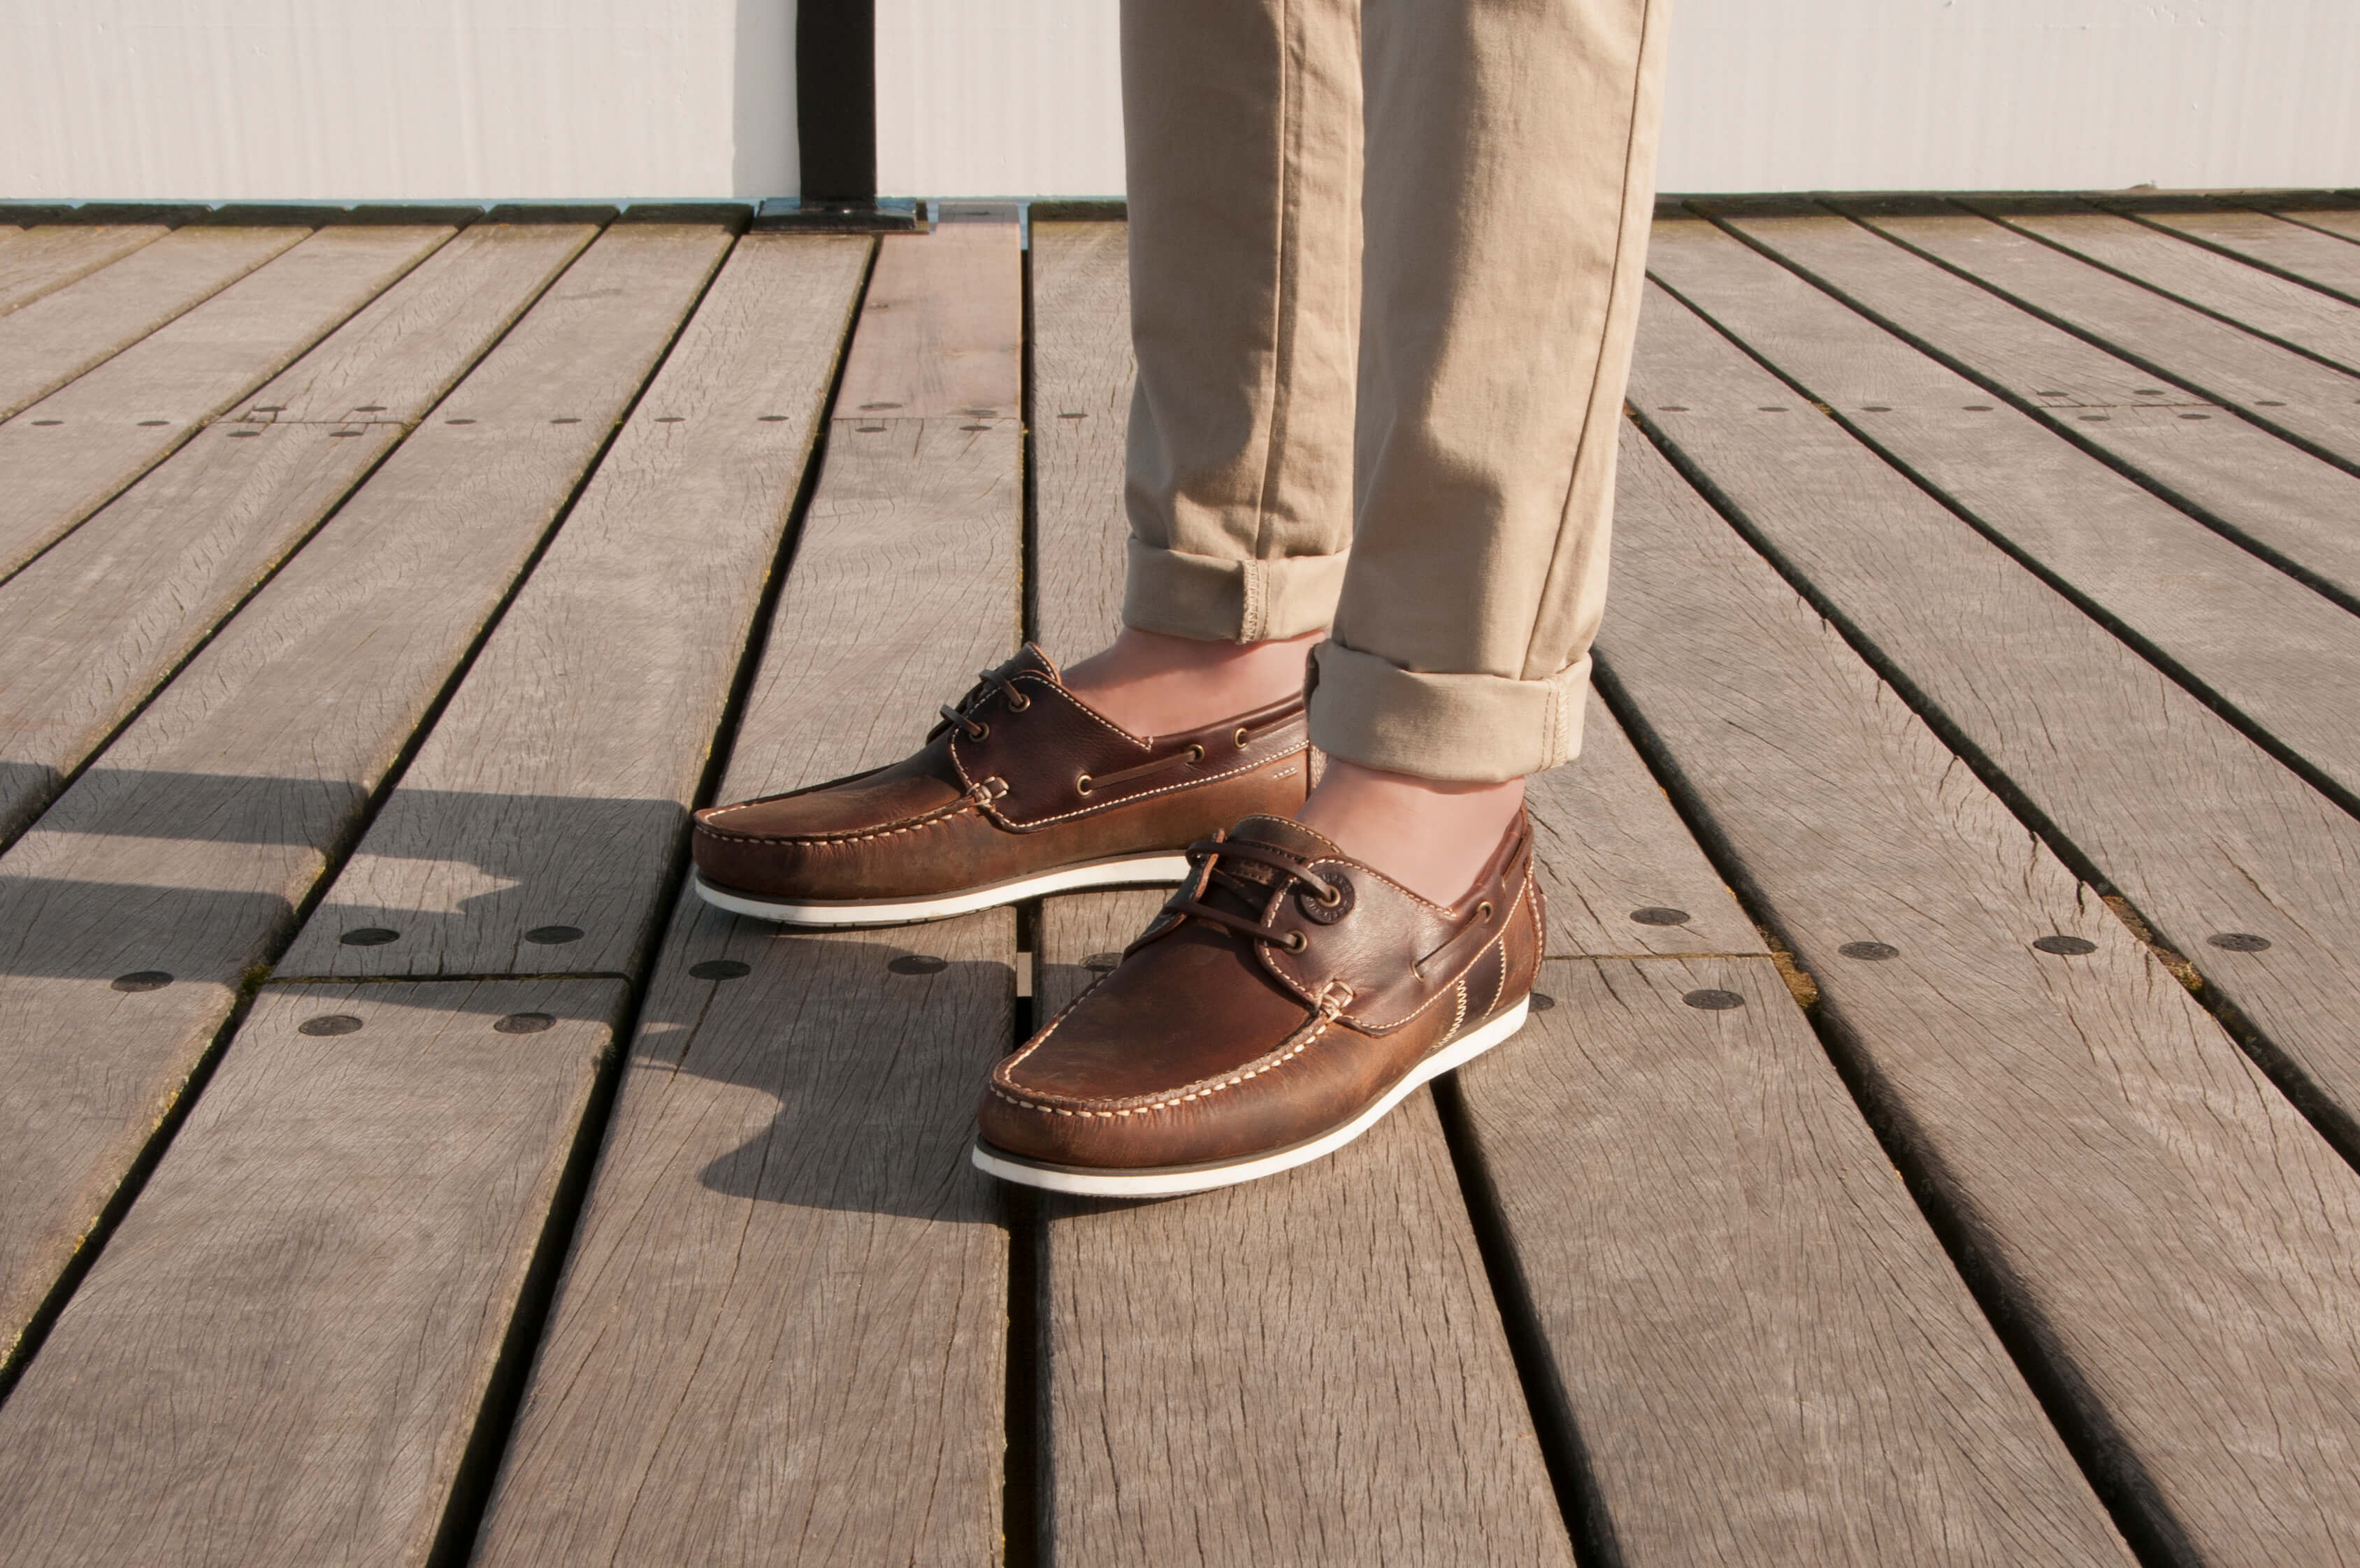 Get on board with the New Wave of Boat Shoes | Home › Blog